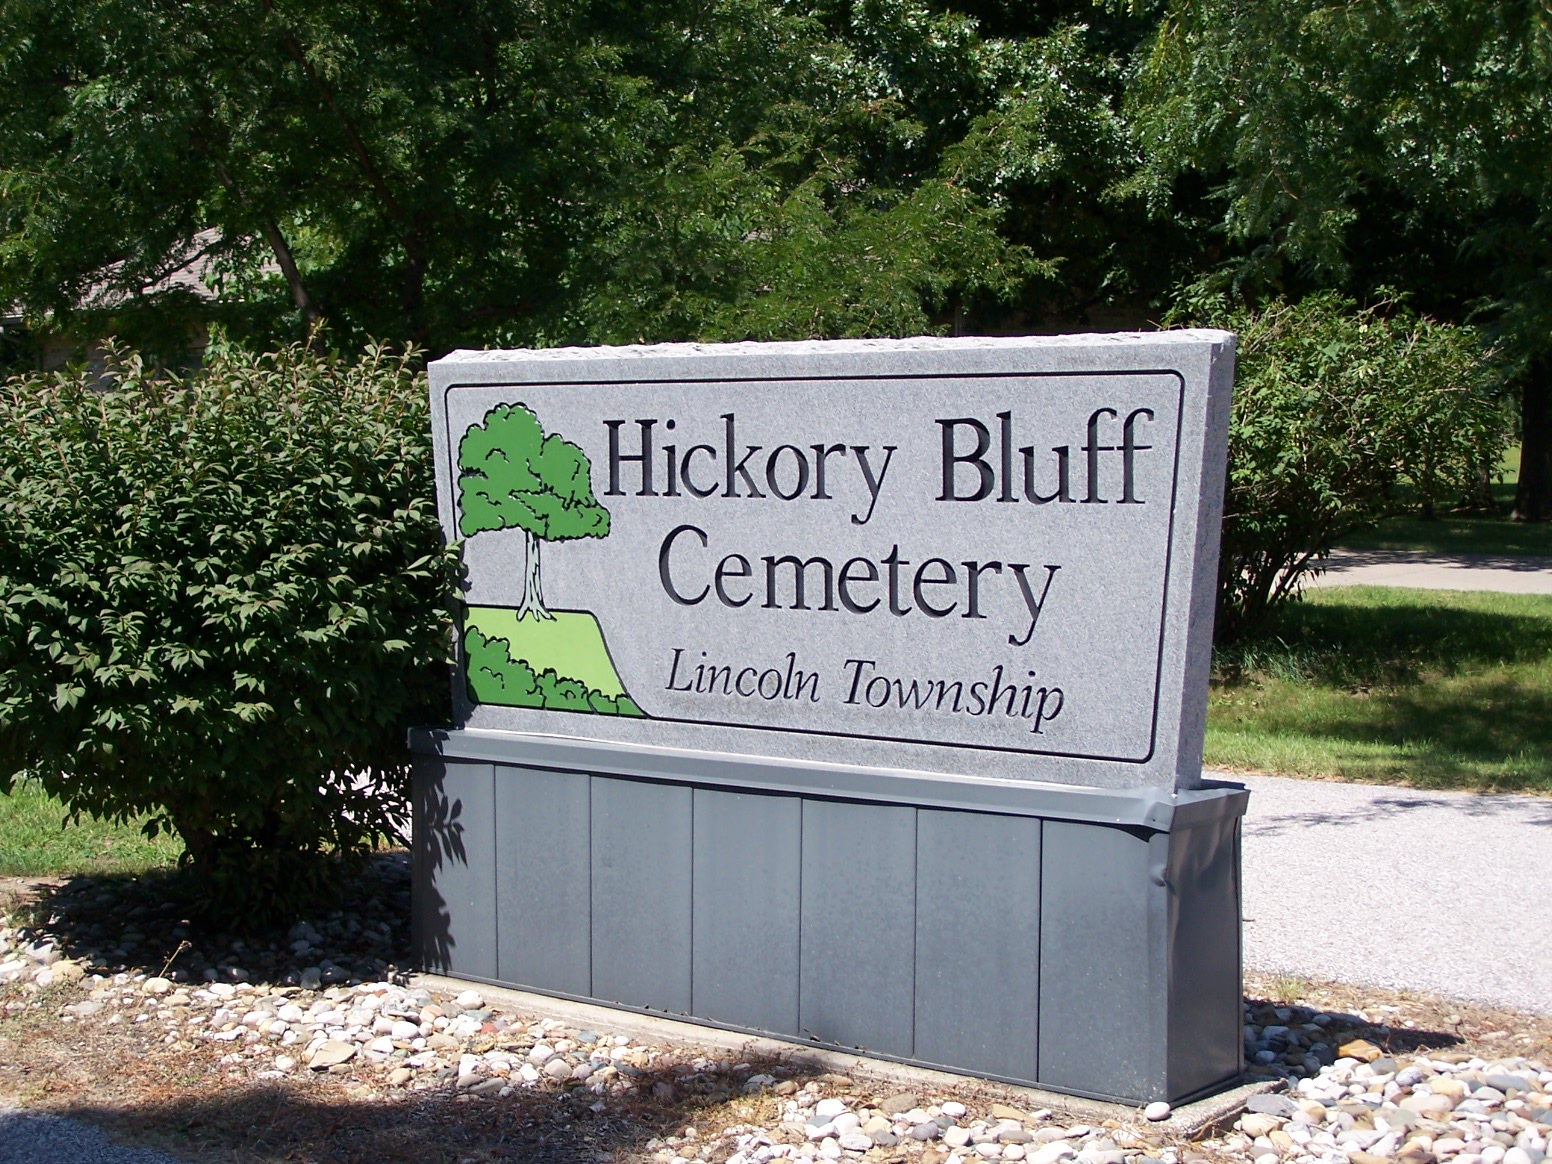 Hickory Bluff Cemetery